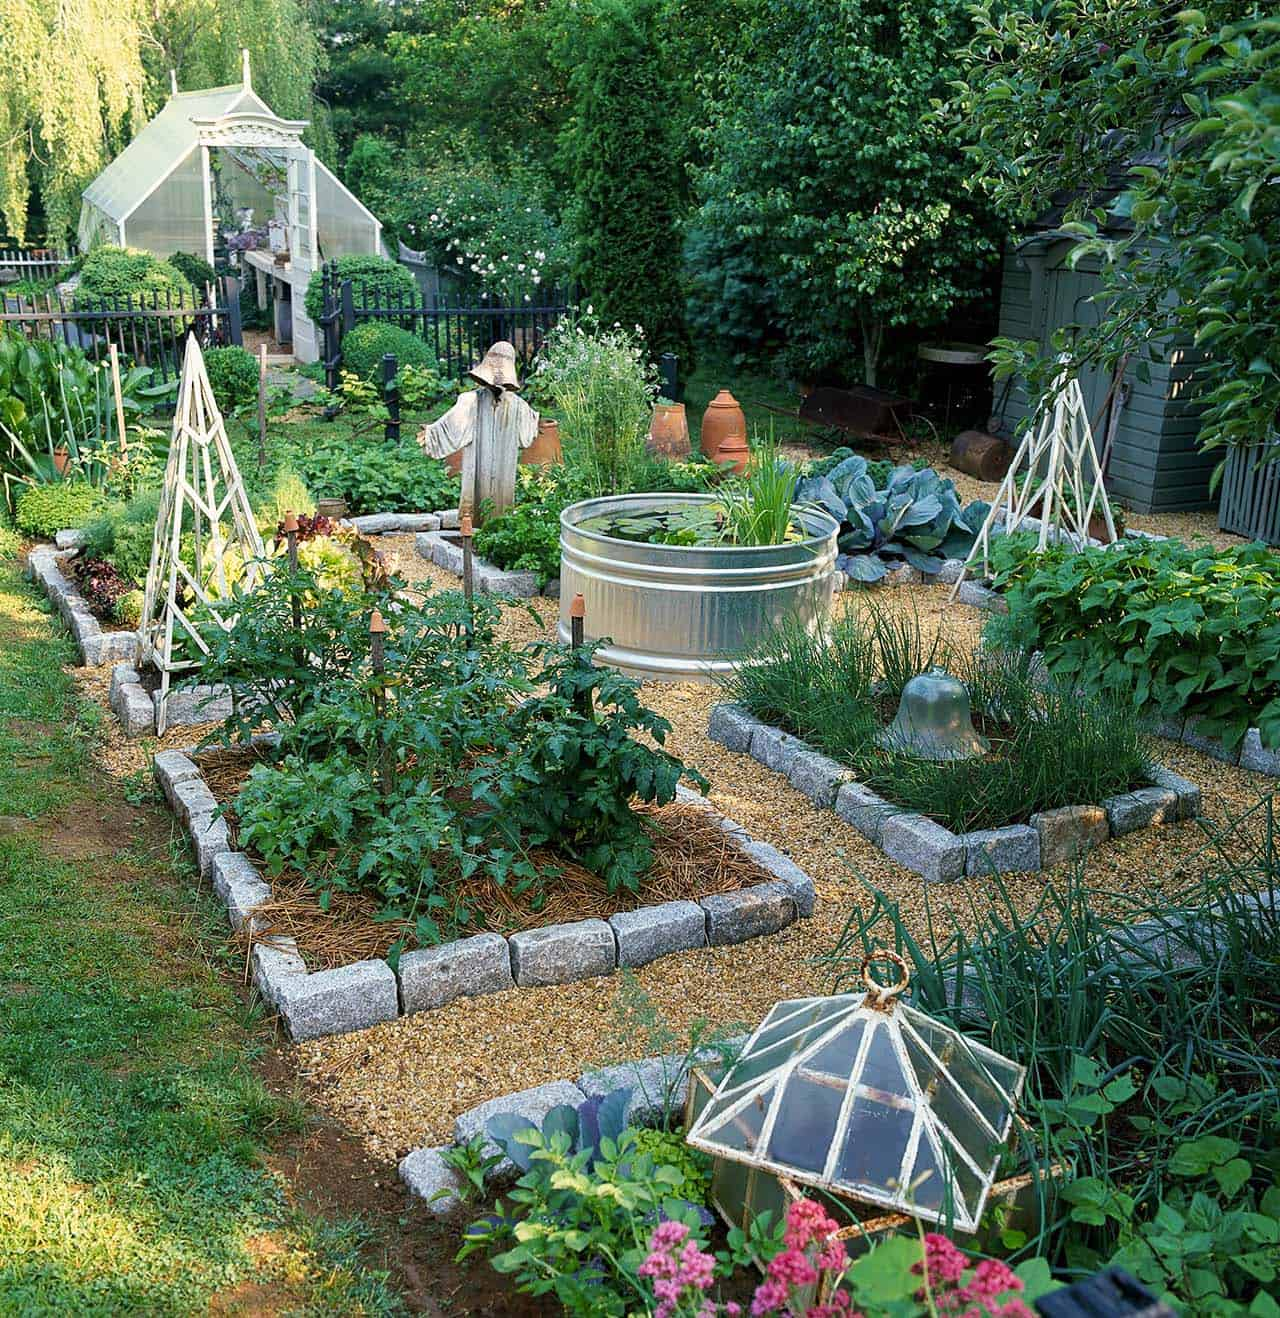 30 Amazing Ideas For Growing A Vegetable Garden In Your ... on Outdoor Vegetable Garden Ideas id=71247